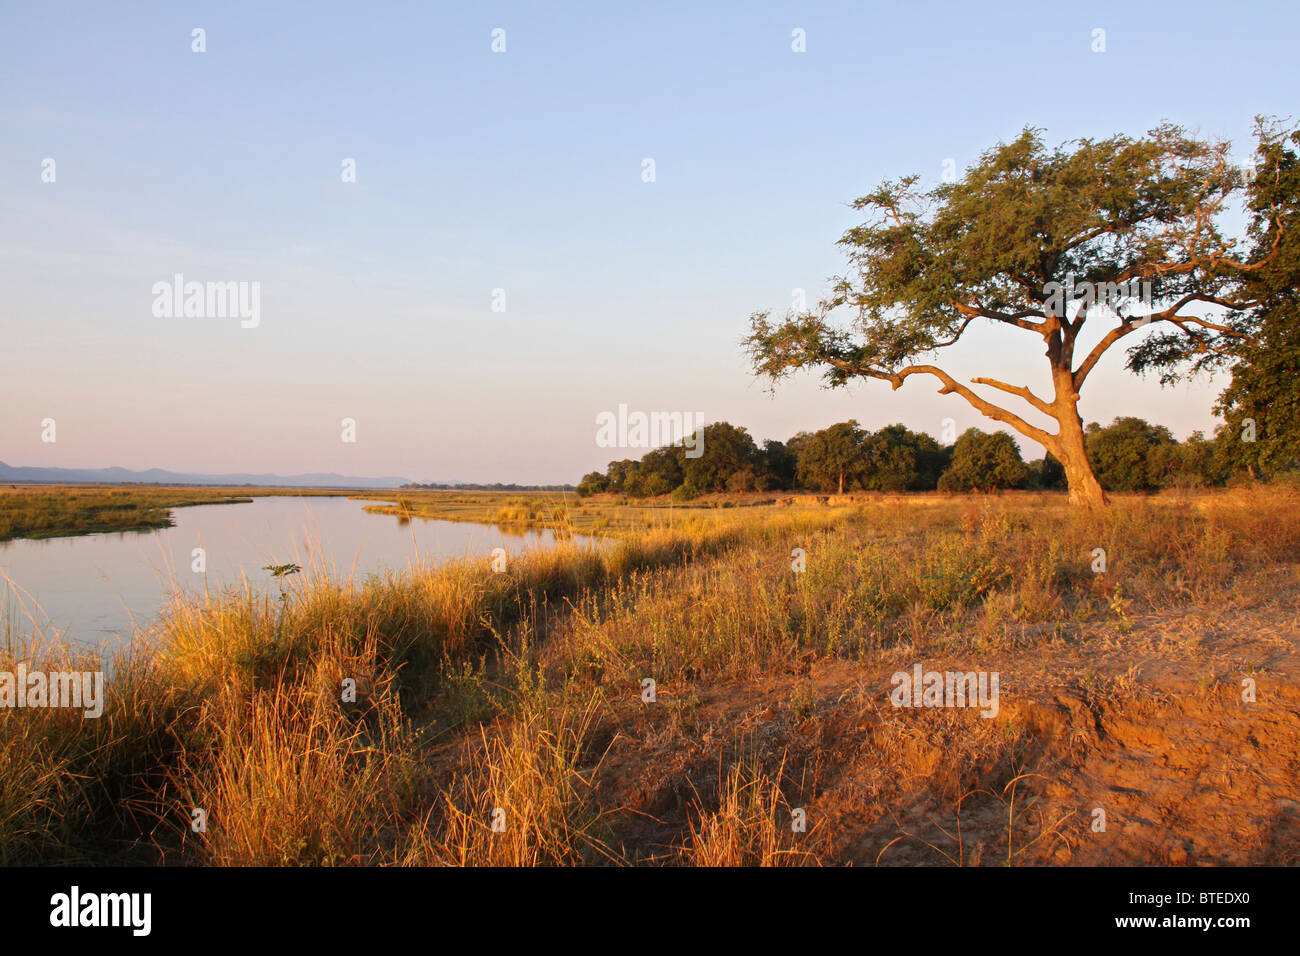 Zambezi River banks with long dry grass and water in the background - Stock Image